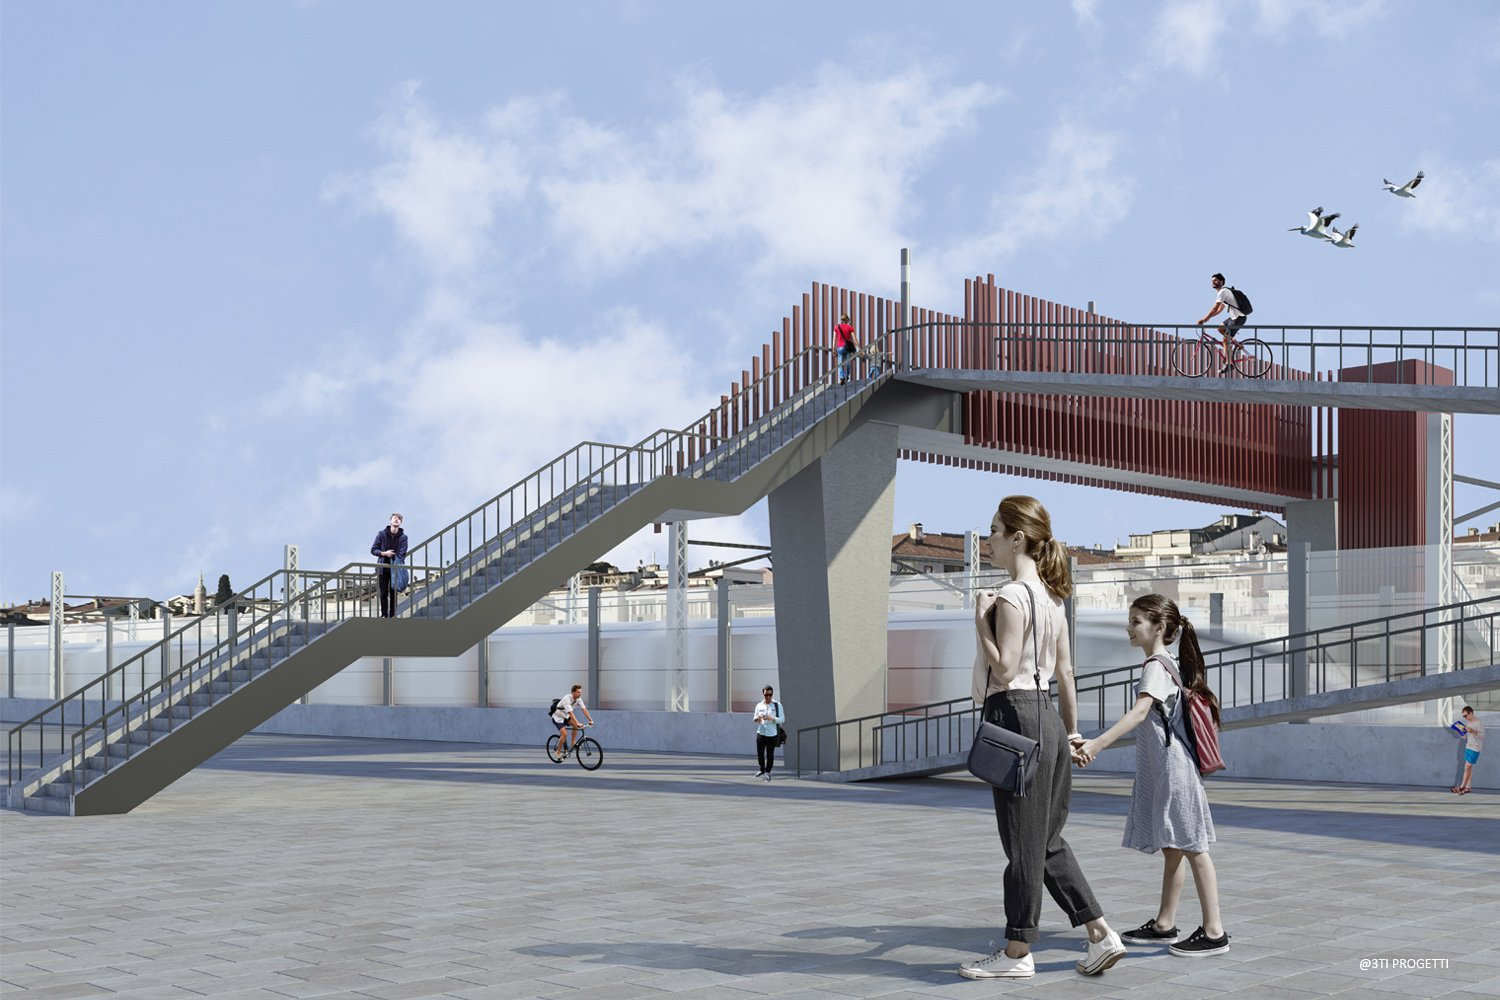 OVERPASS WITH RAMP AND STAIRS 3TI PROGETTI